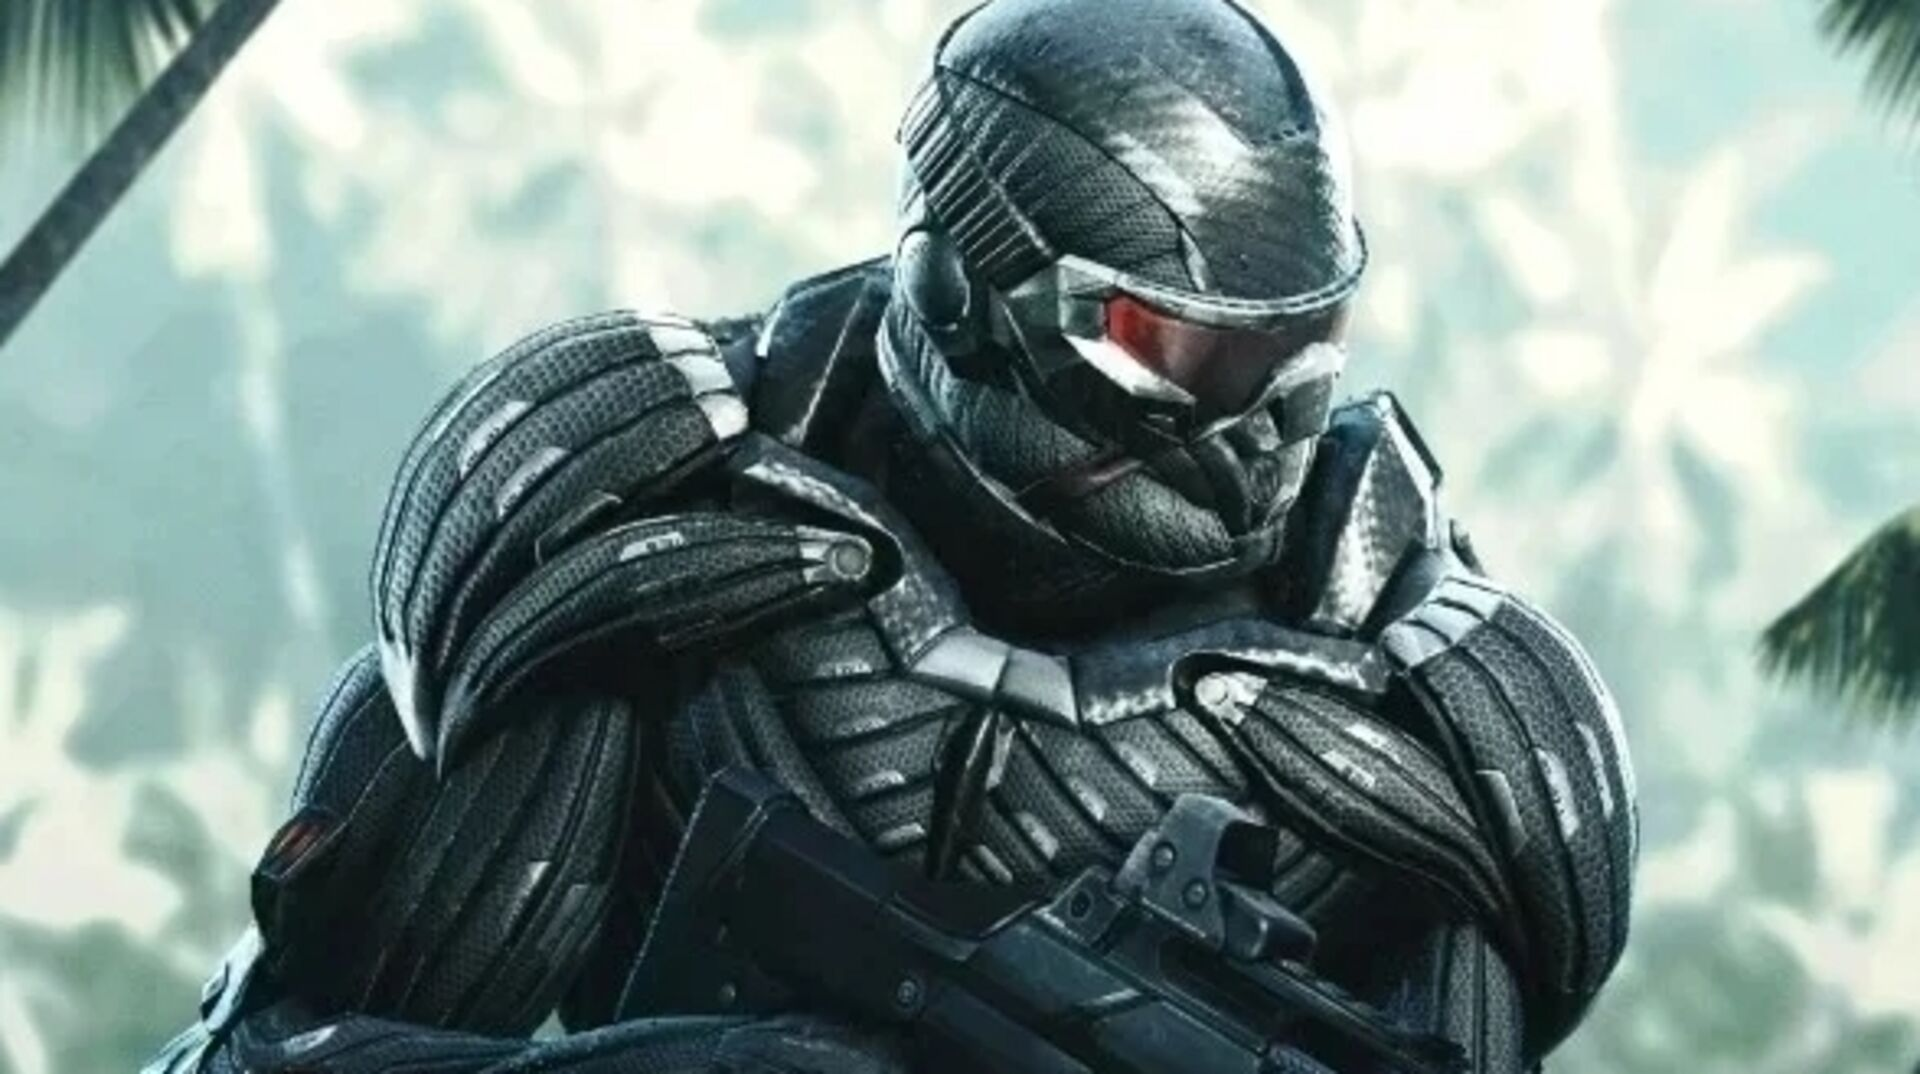 Crysis Remastered: this is what ray tracing looks like on consoles • Eurogamer.net